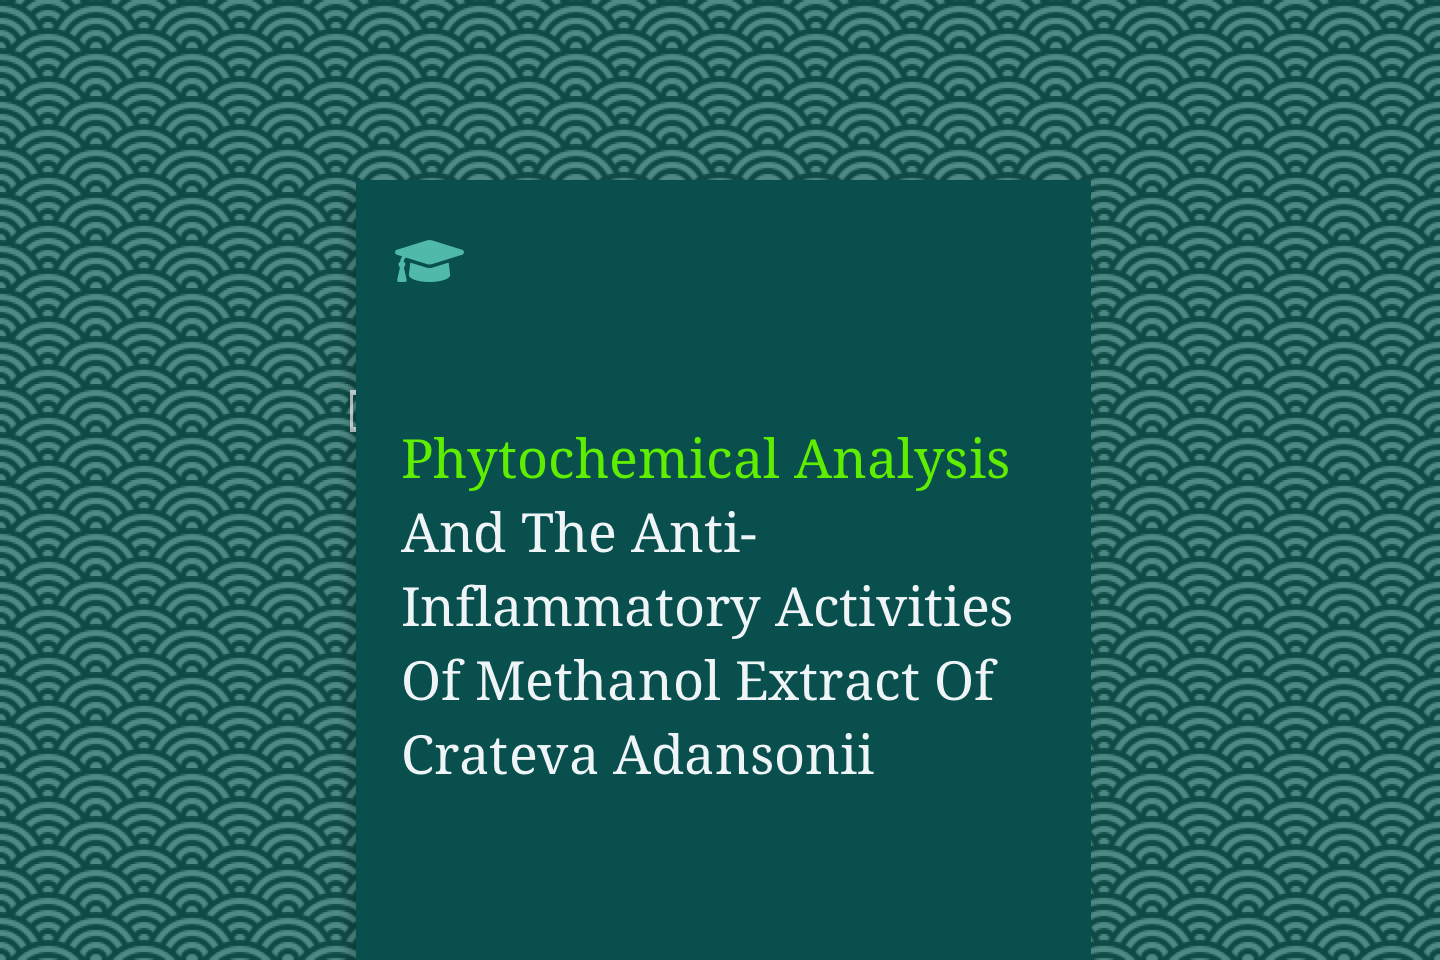 Phytochemical Analysis And The Anti-Inflammatory Activities Of Methanol Extract Of Crateva Adansonii